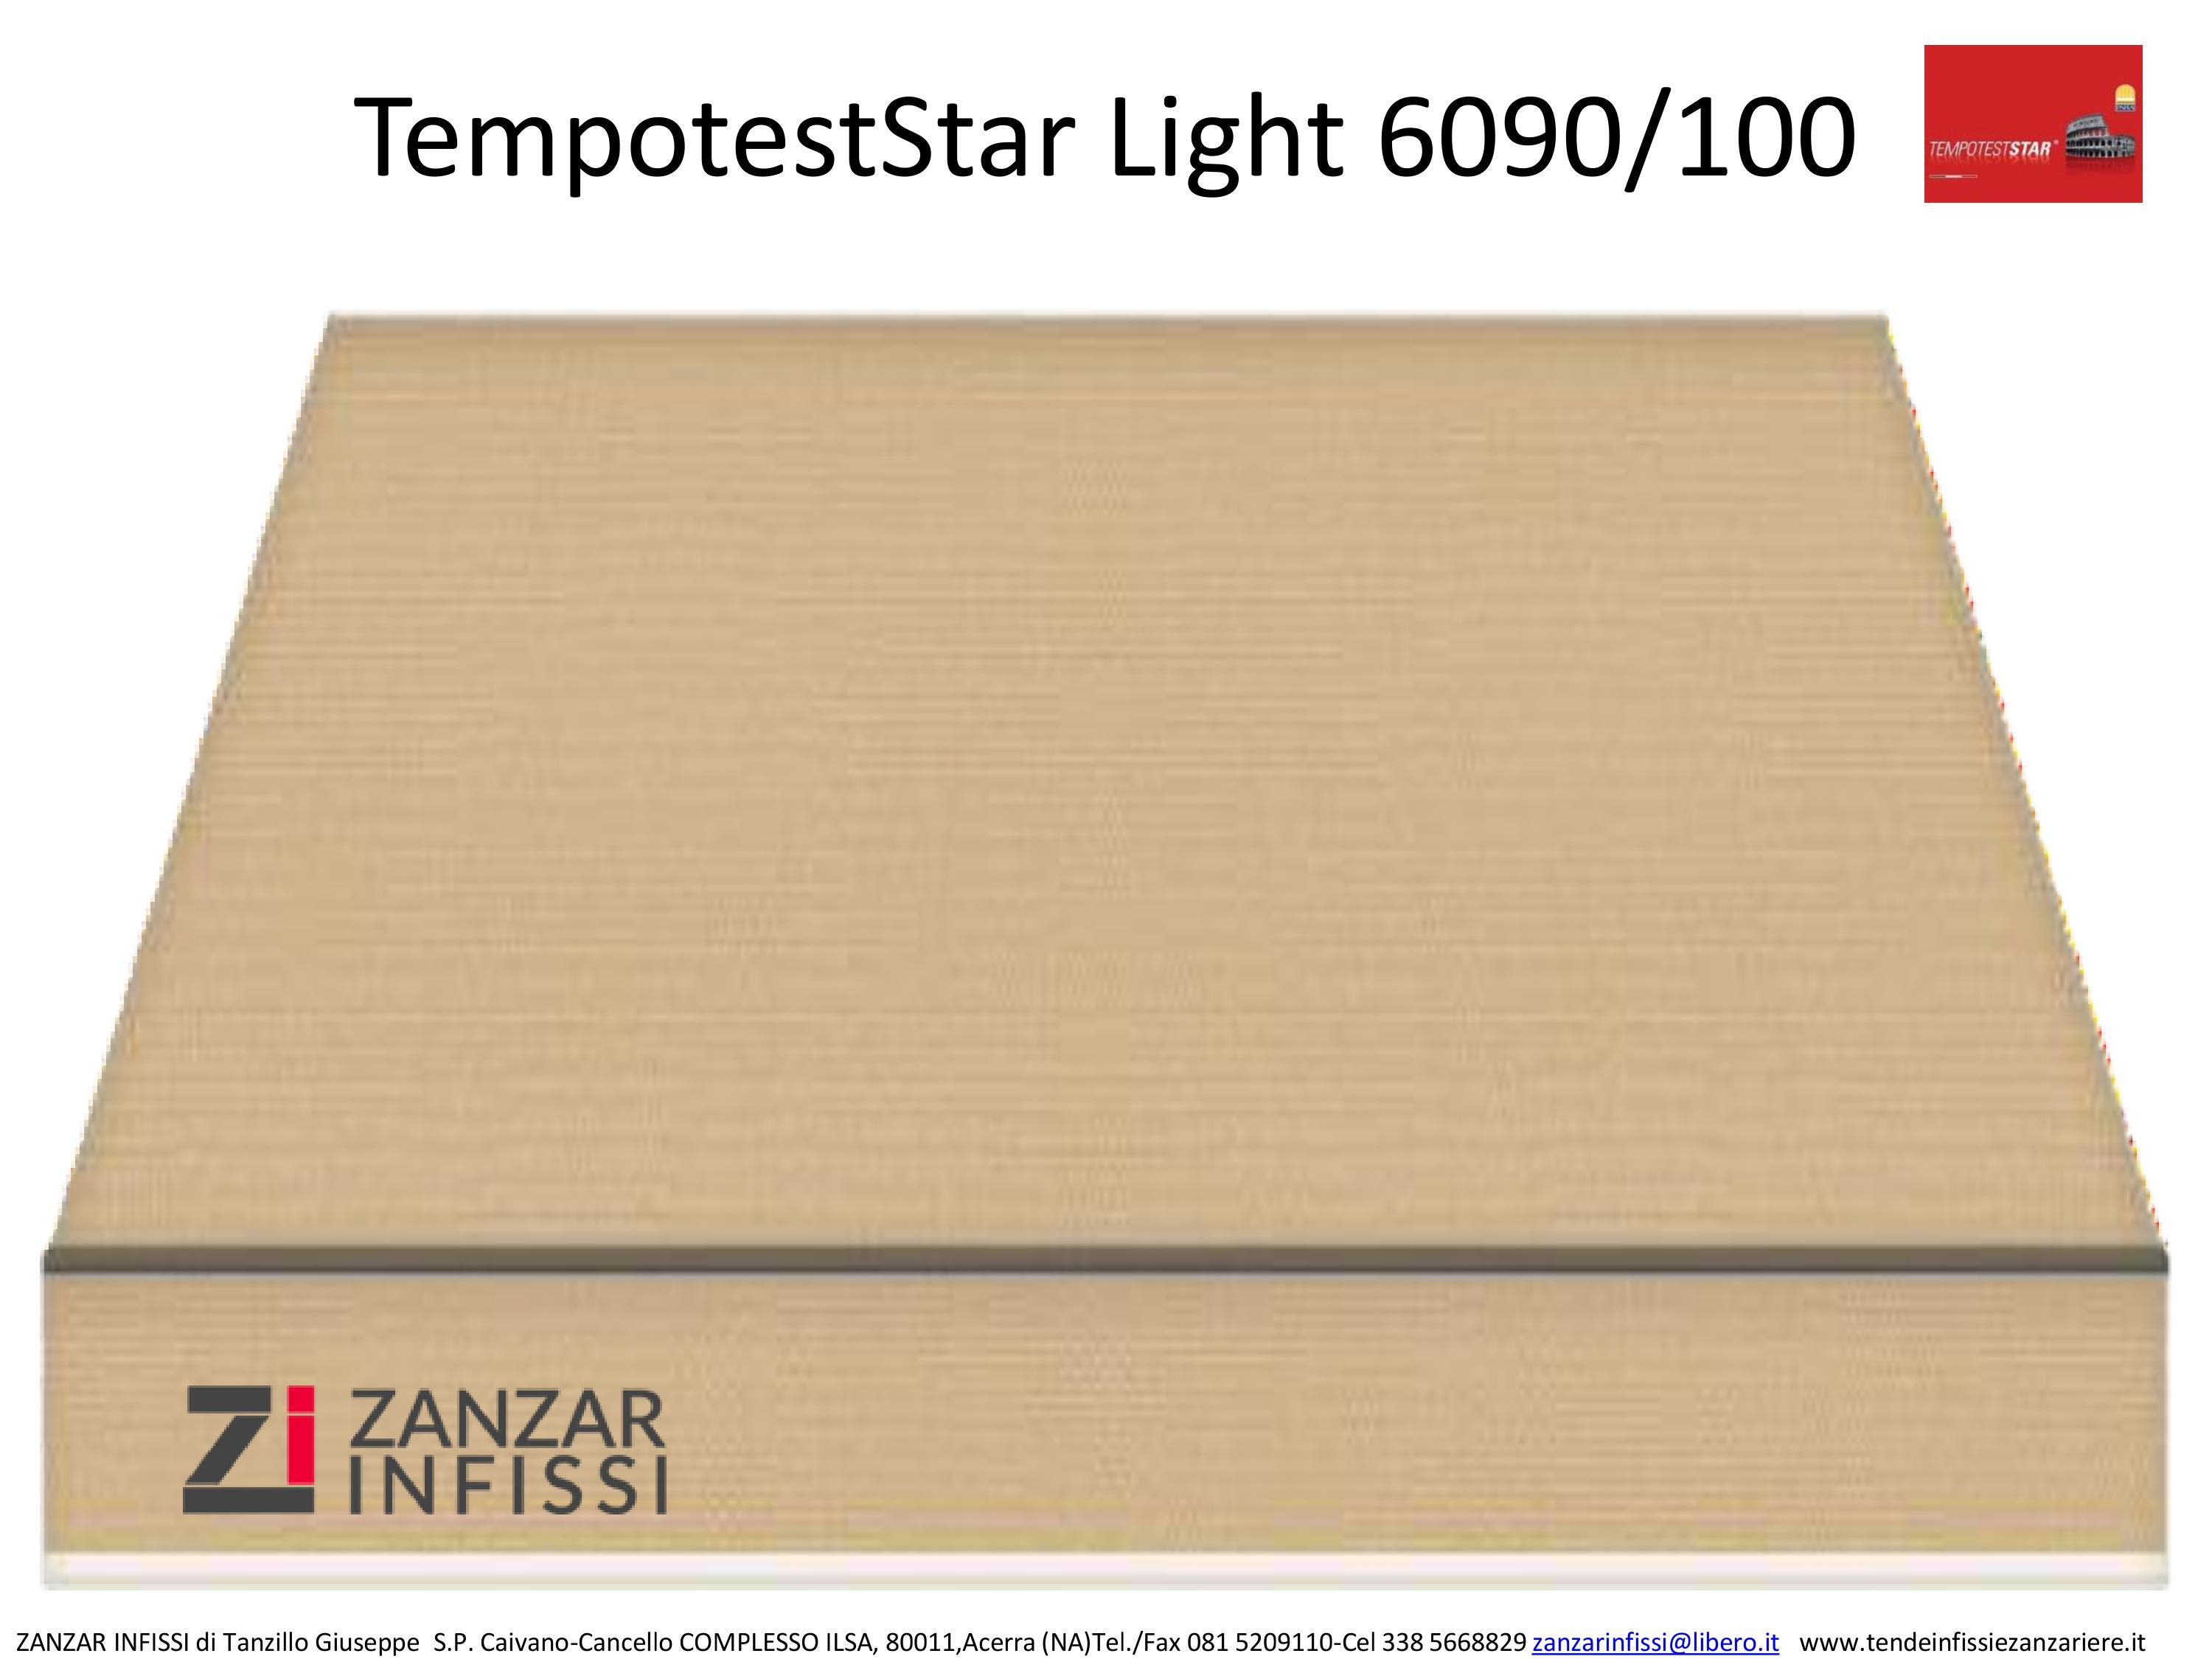 Tempotest star light 6090/100